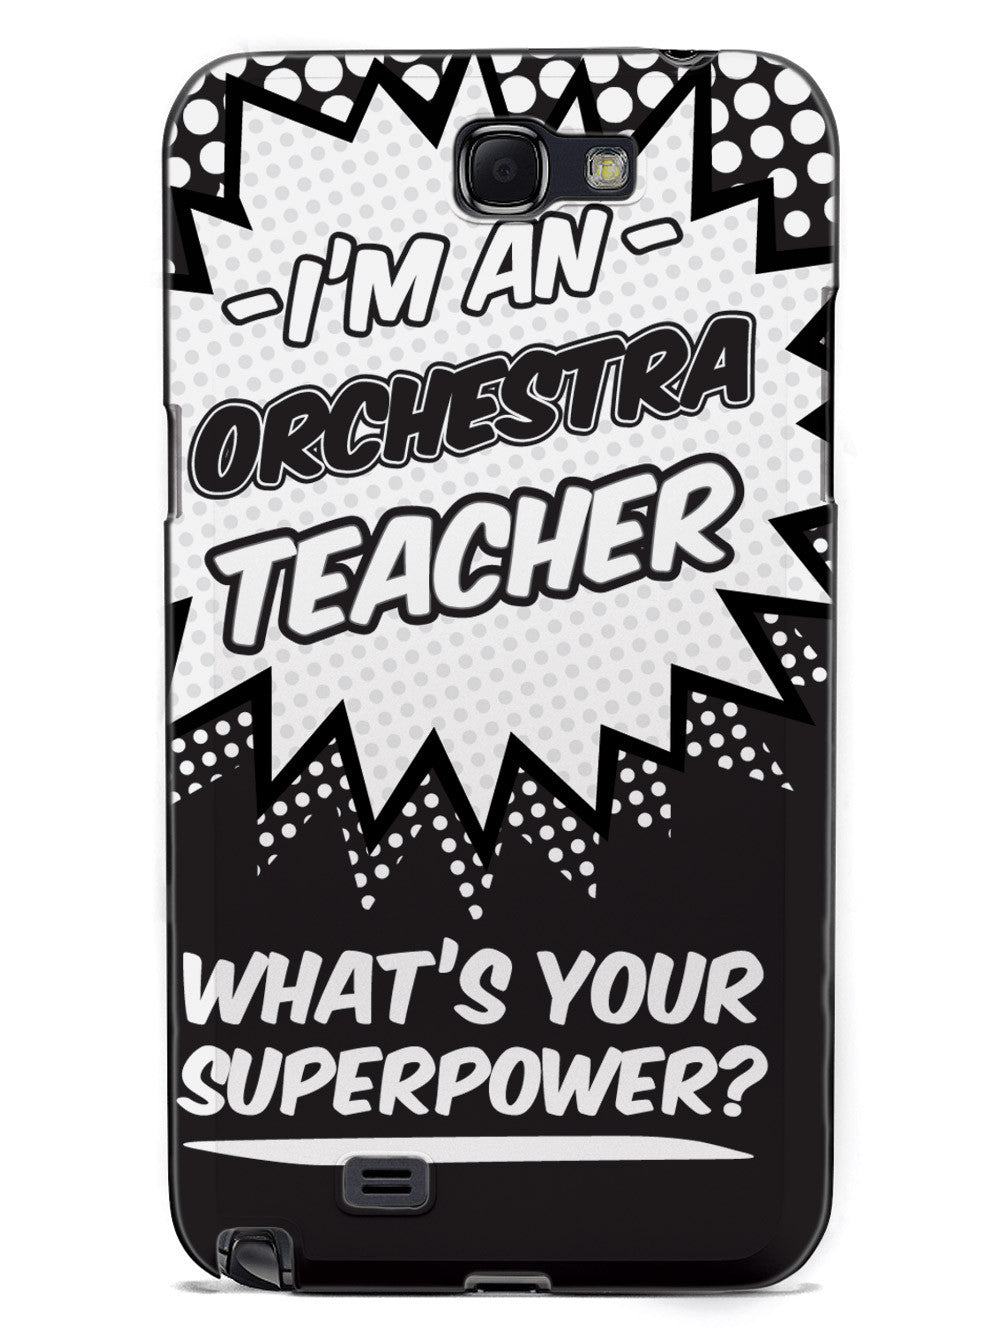 Orchestra Teacher - What's Your Superpower? Case